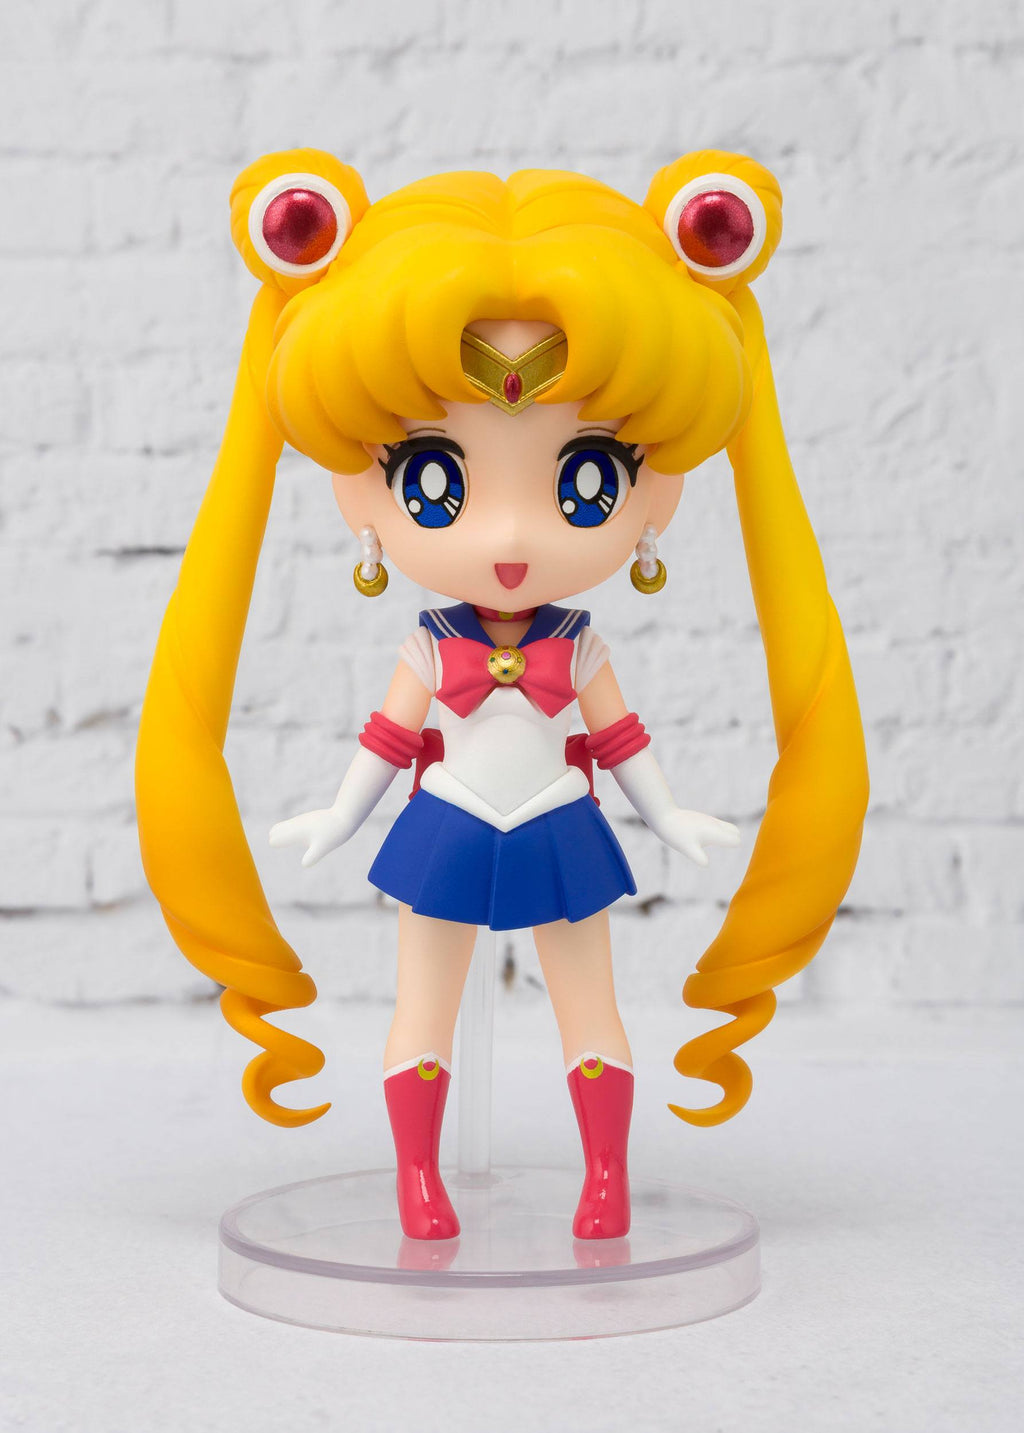 Sailor Moon Figuarts mini Action Figure Sailor Moon 9 cm - In Stock